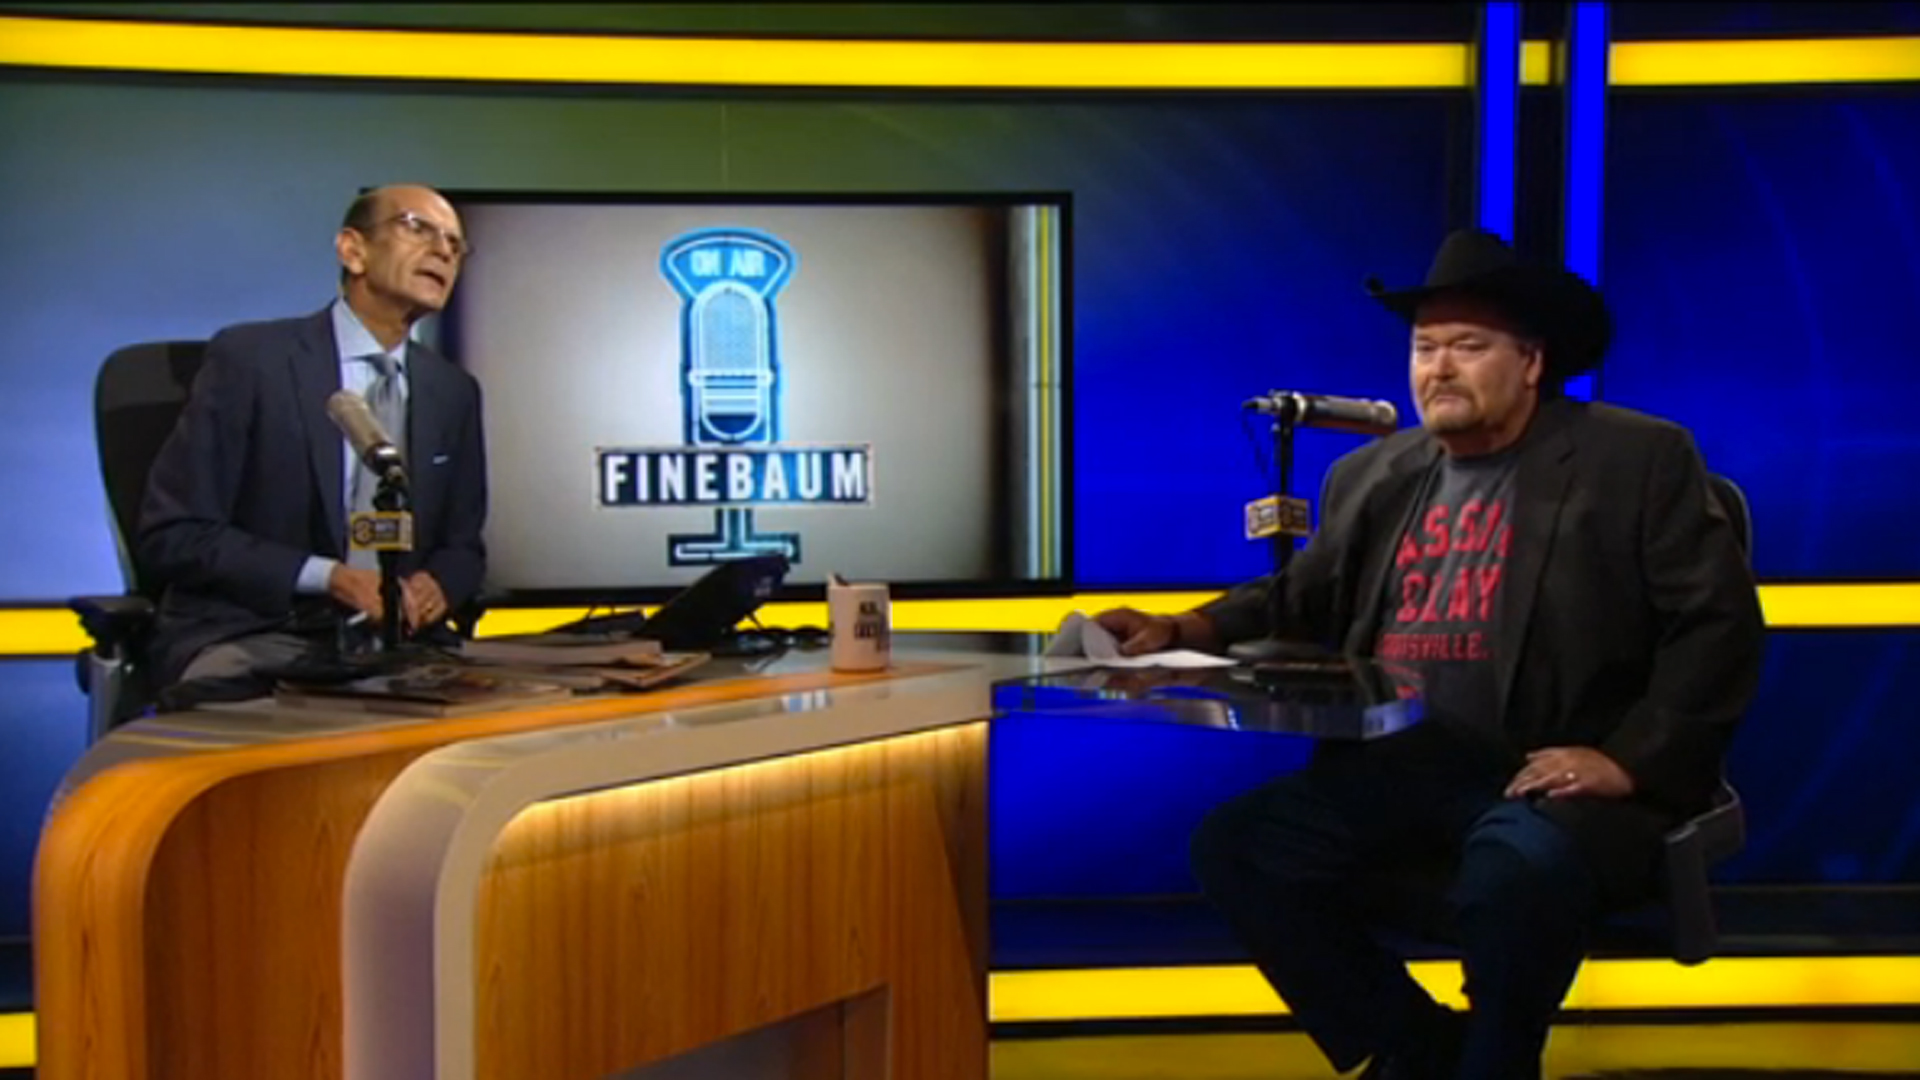 Jim Ross provides call of 'Kick Six' play for Paul Finebaum